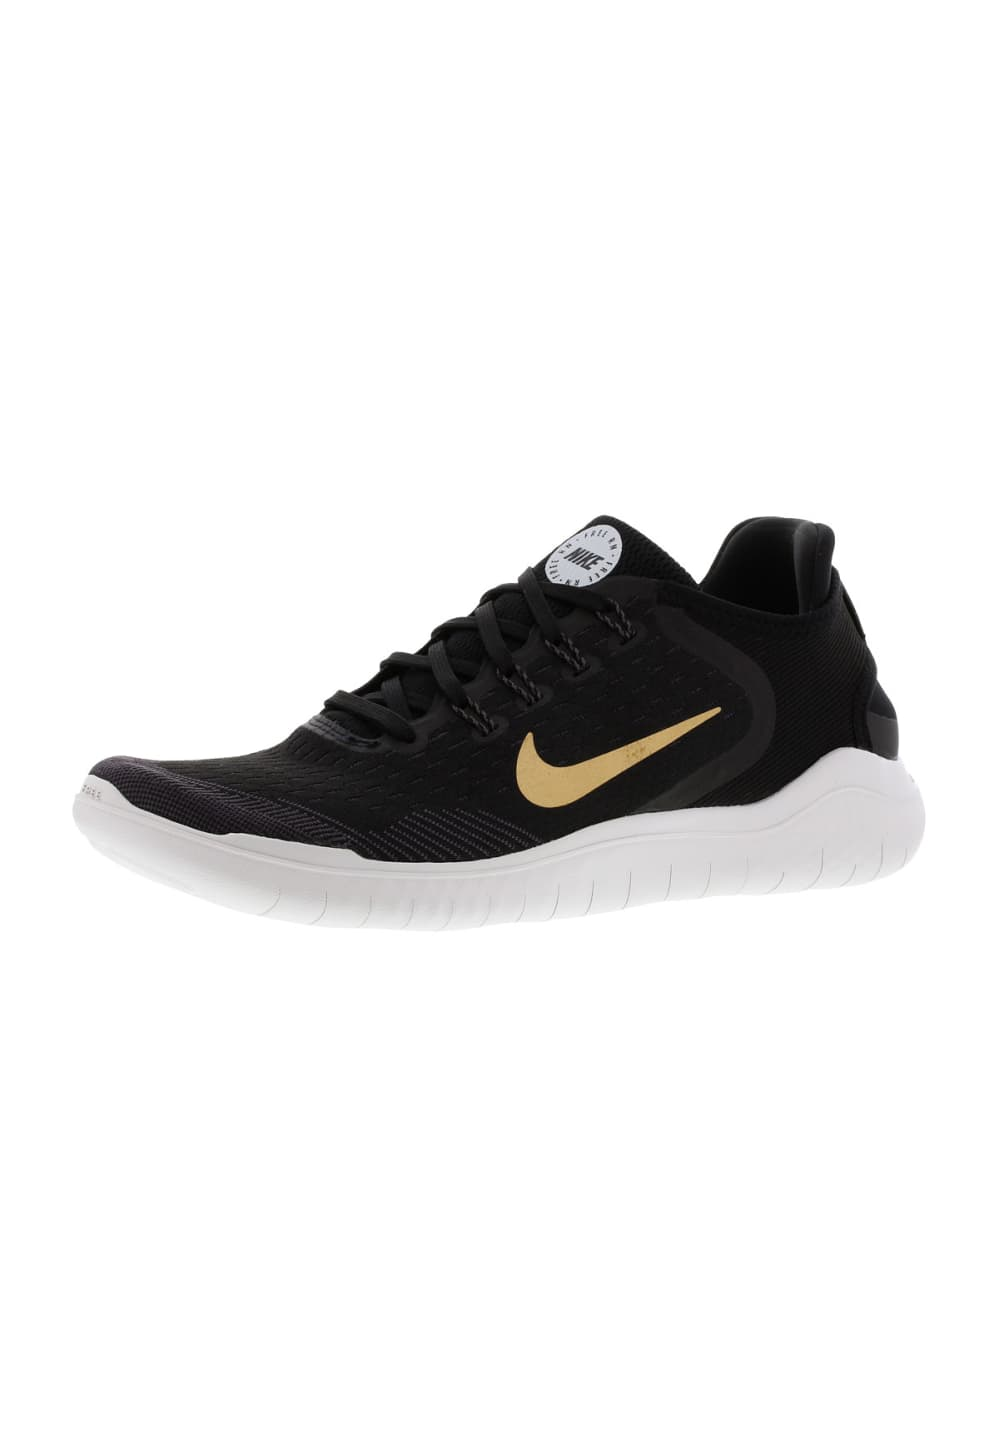 reputable site 7f1ca 04ba3 Next. -60%. Nike. Free RN 2018 - Chaussures running pour Femme